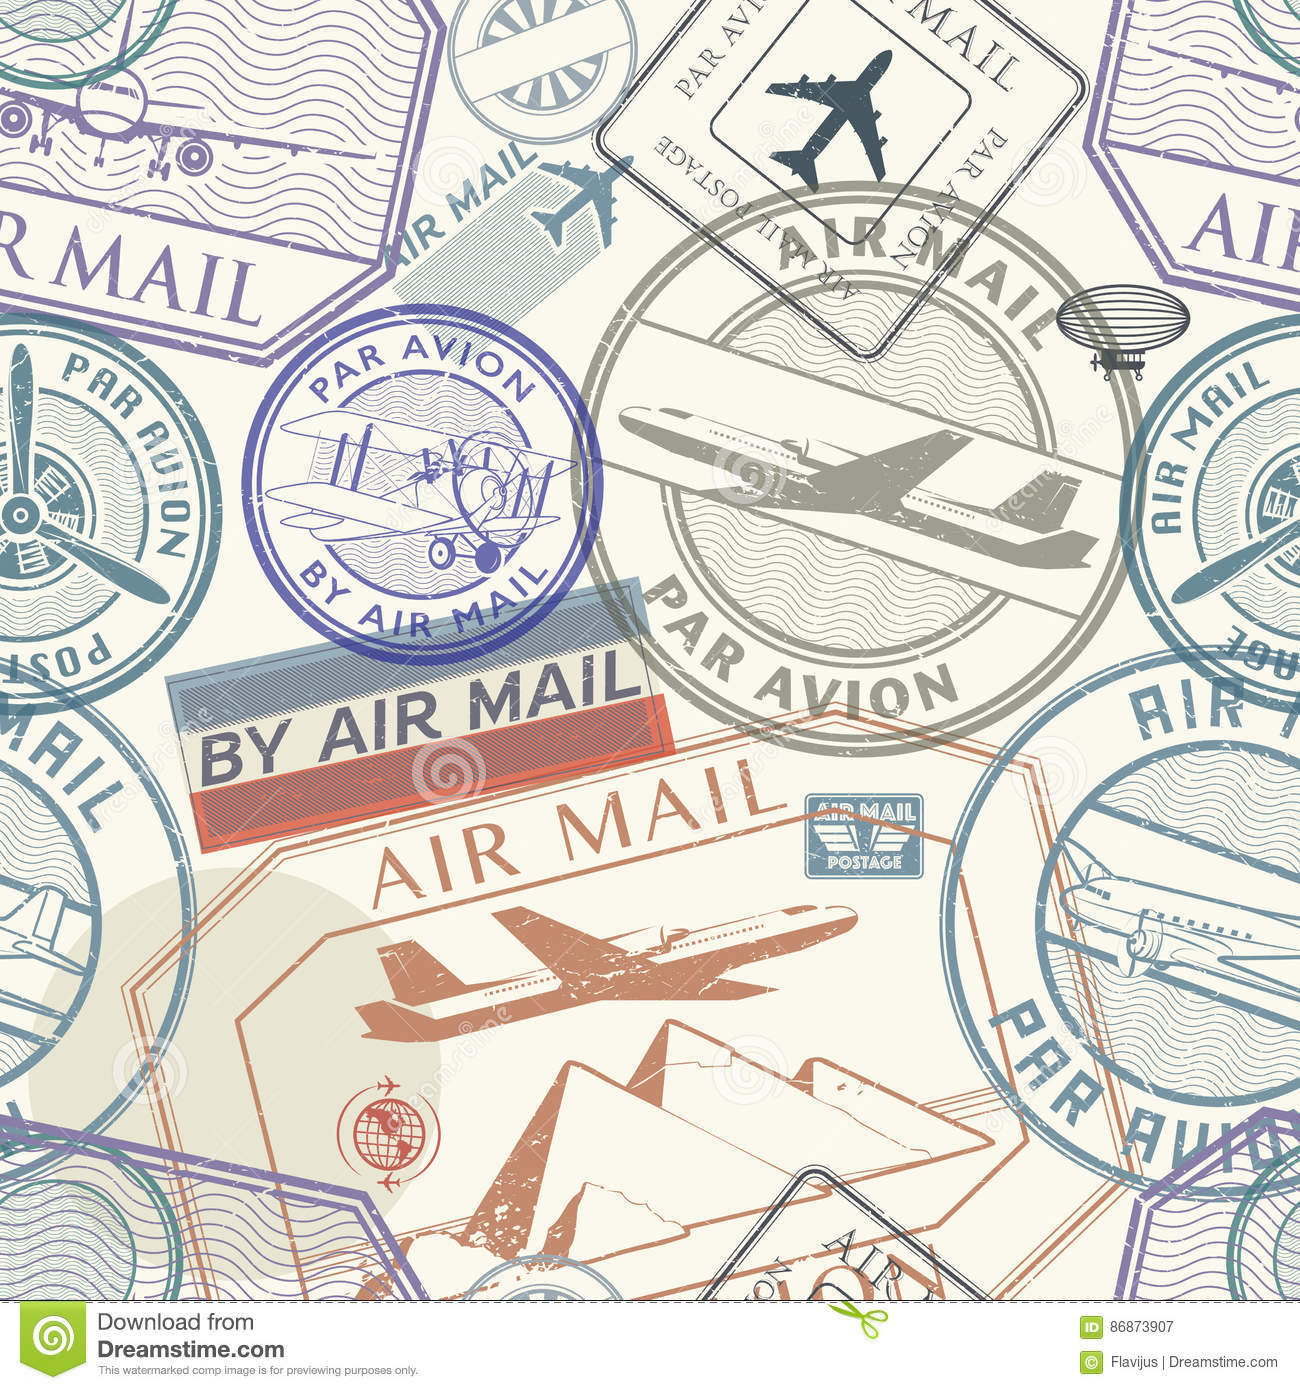 Travel or air mail grunge rubber stamps set, seamless pattern